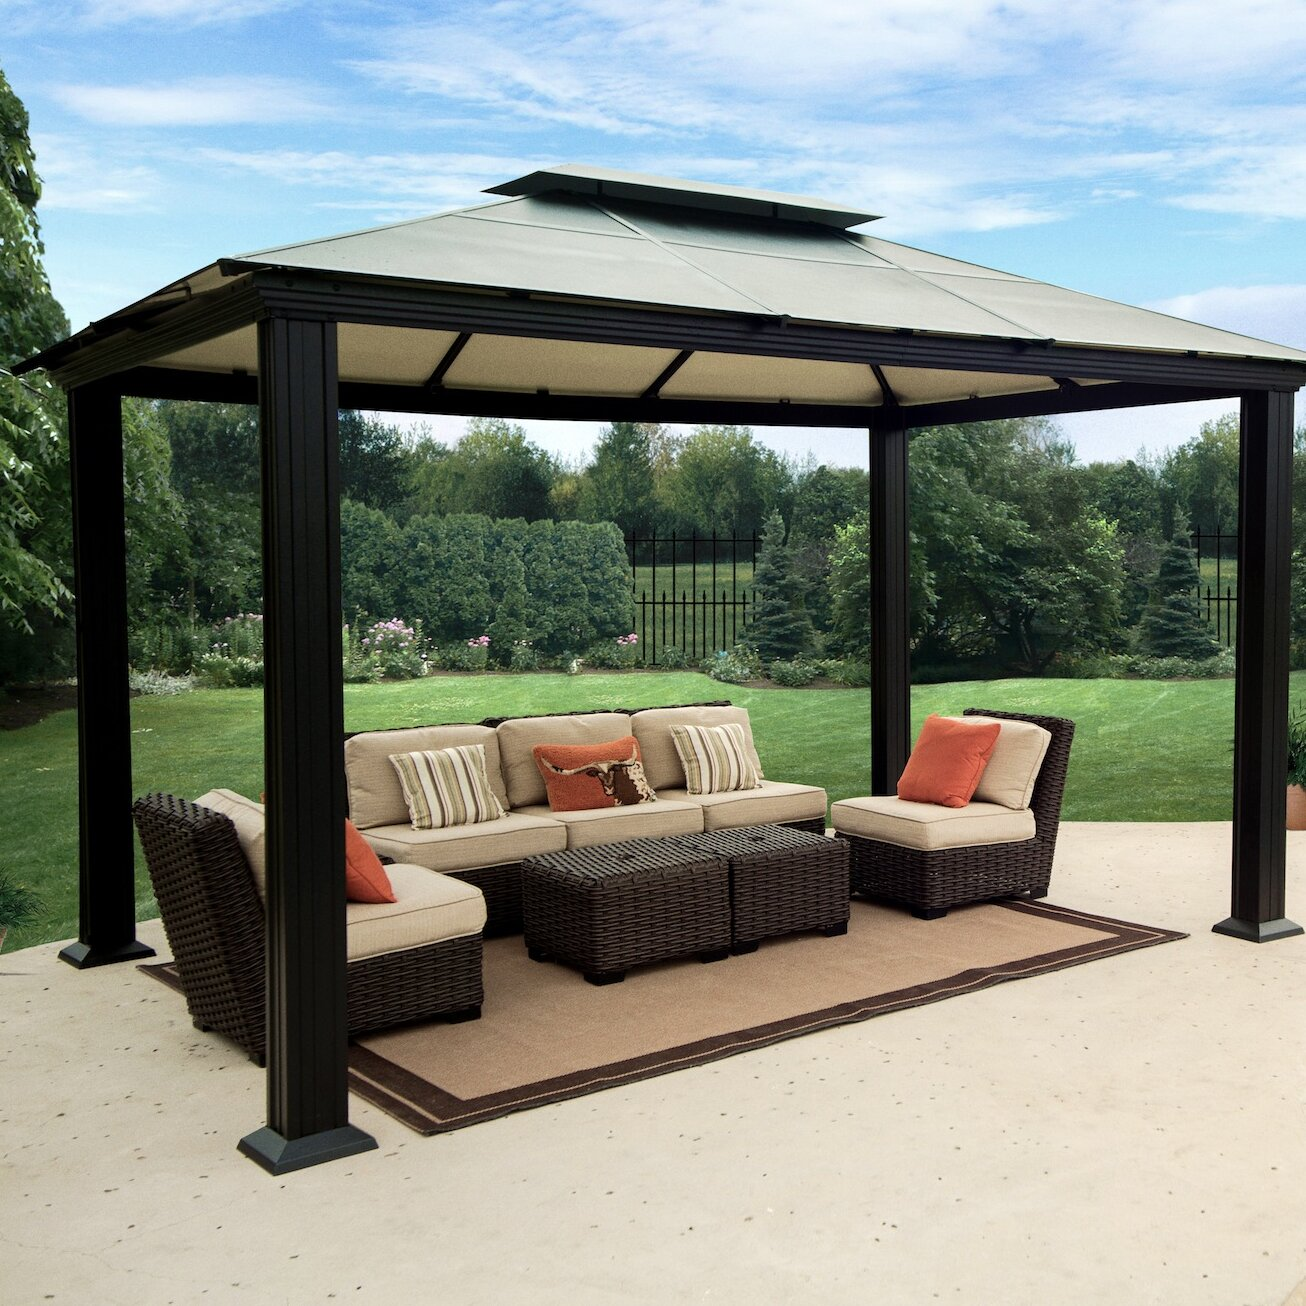 Amazing Santa Monica Four Season 11 Ft W X 13 Ft D Metal Patio Gazebo Home Interior And Landscaping Palasignezvosmurscom